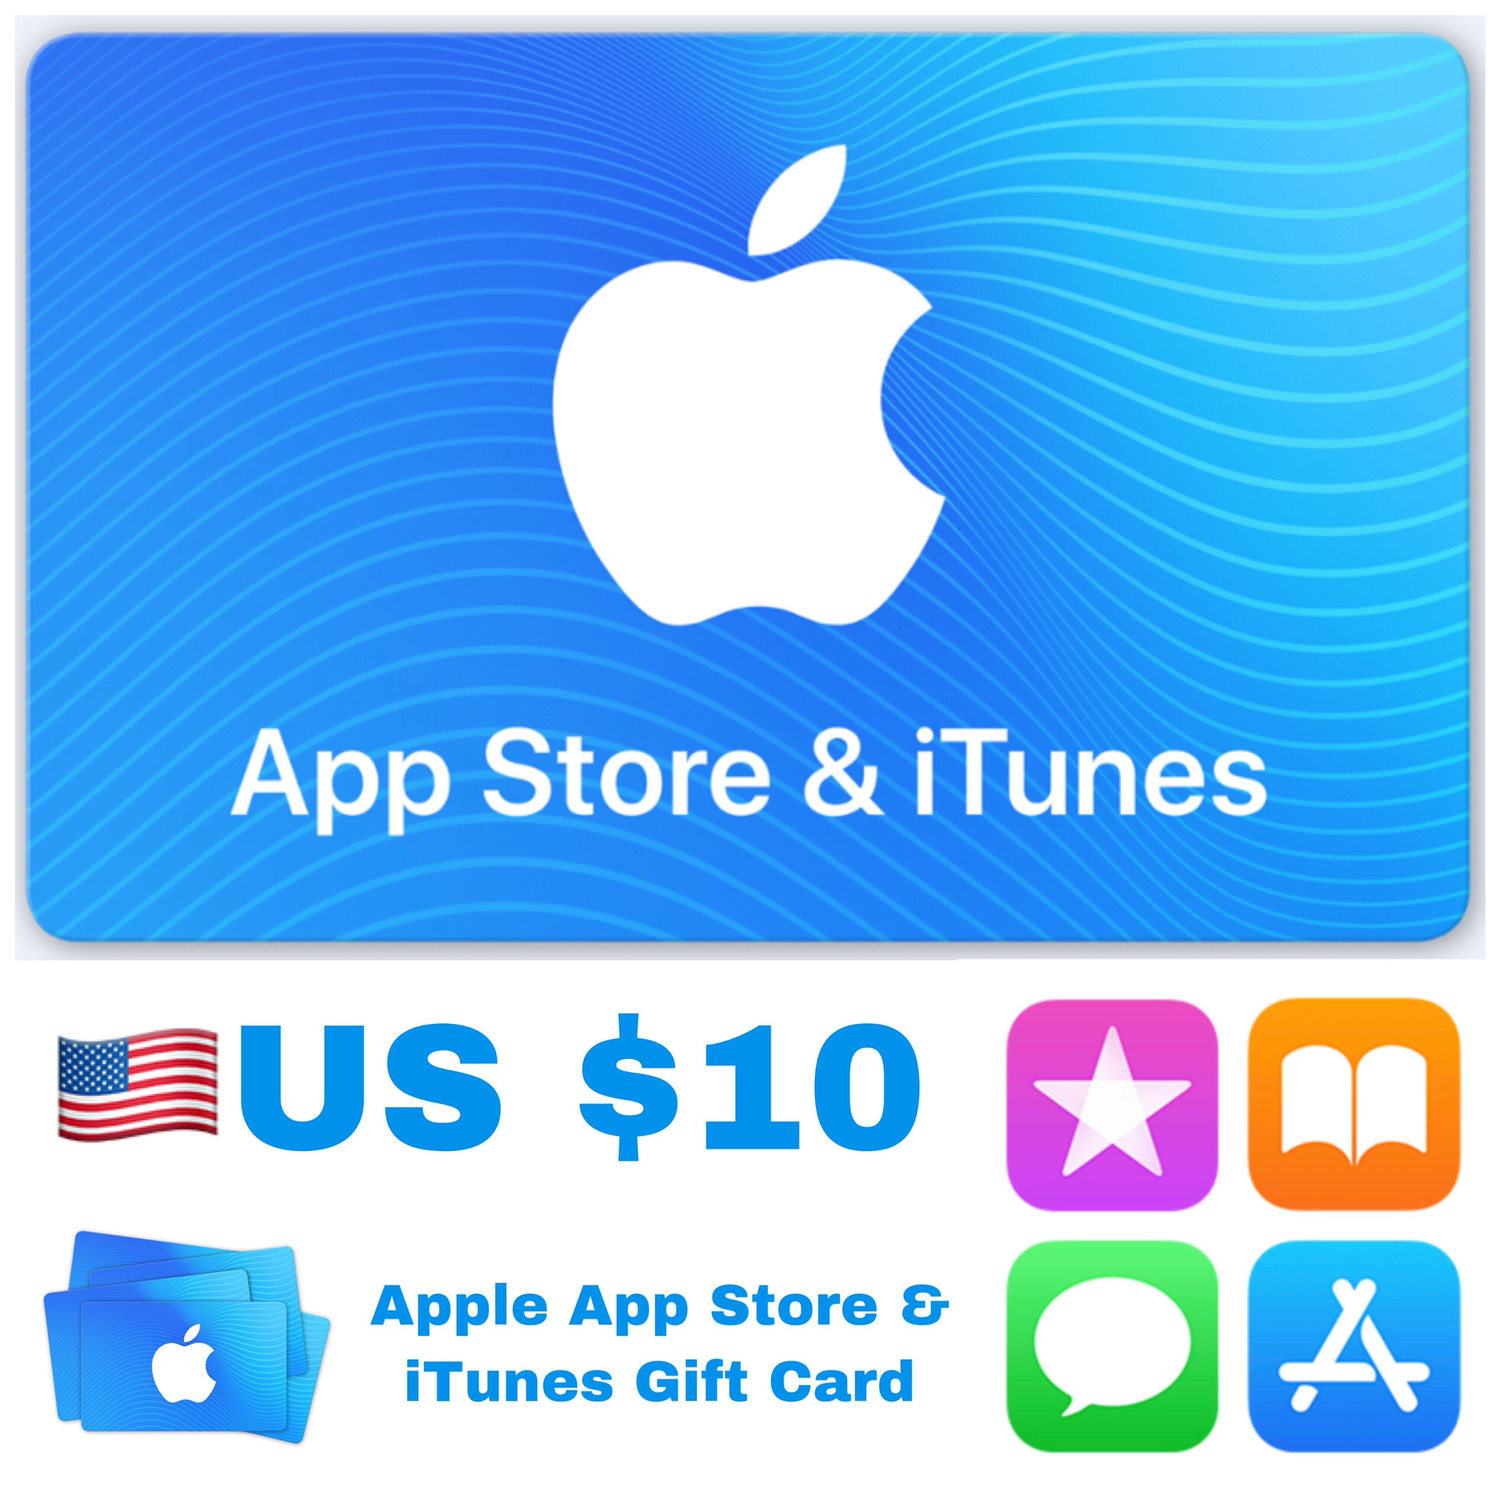 Apple App Store & iTunes Gift Cards US $10